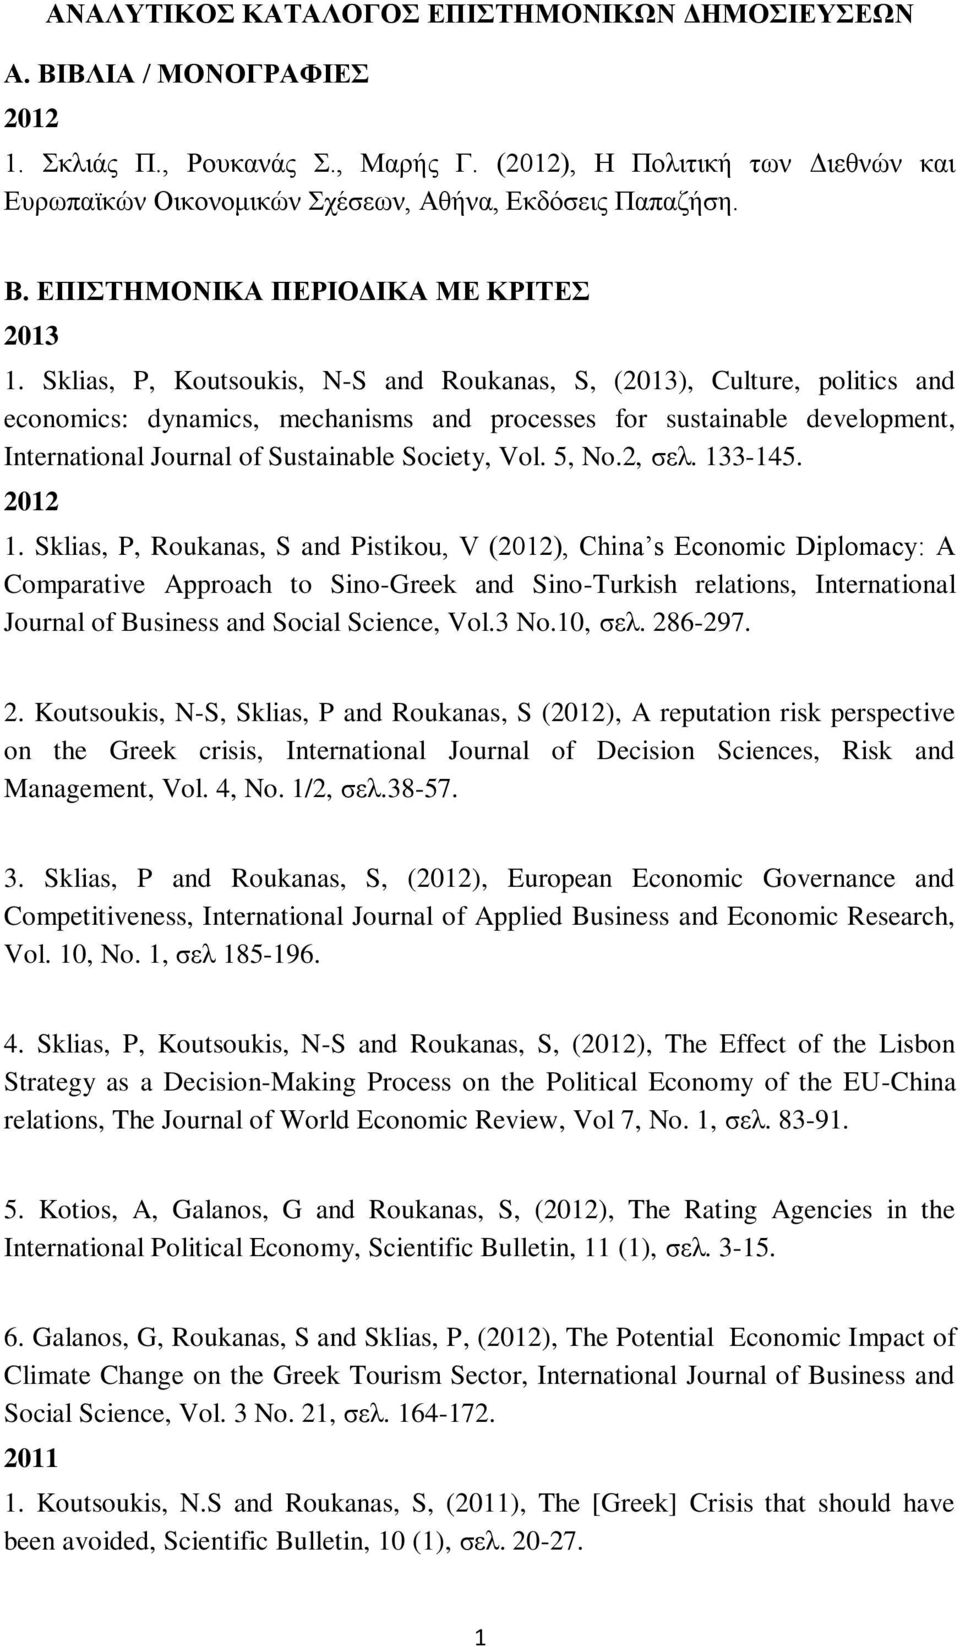 Sklias, P, Koutsoukis, N-S and Roukanas, S, (2013), Culture, politics and economics: dynamics, mechanisms and processes for sustainable development, International Journal of Sustainable Society, Vol.